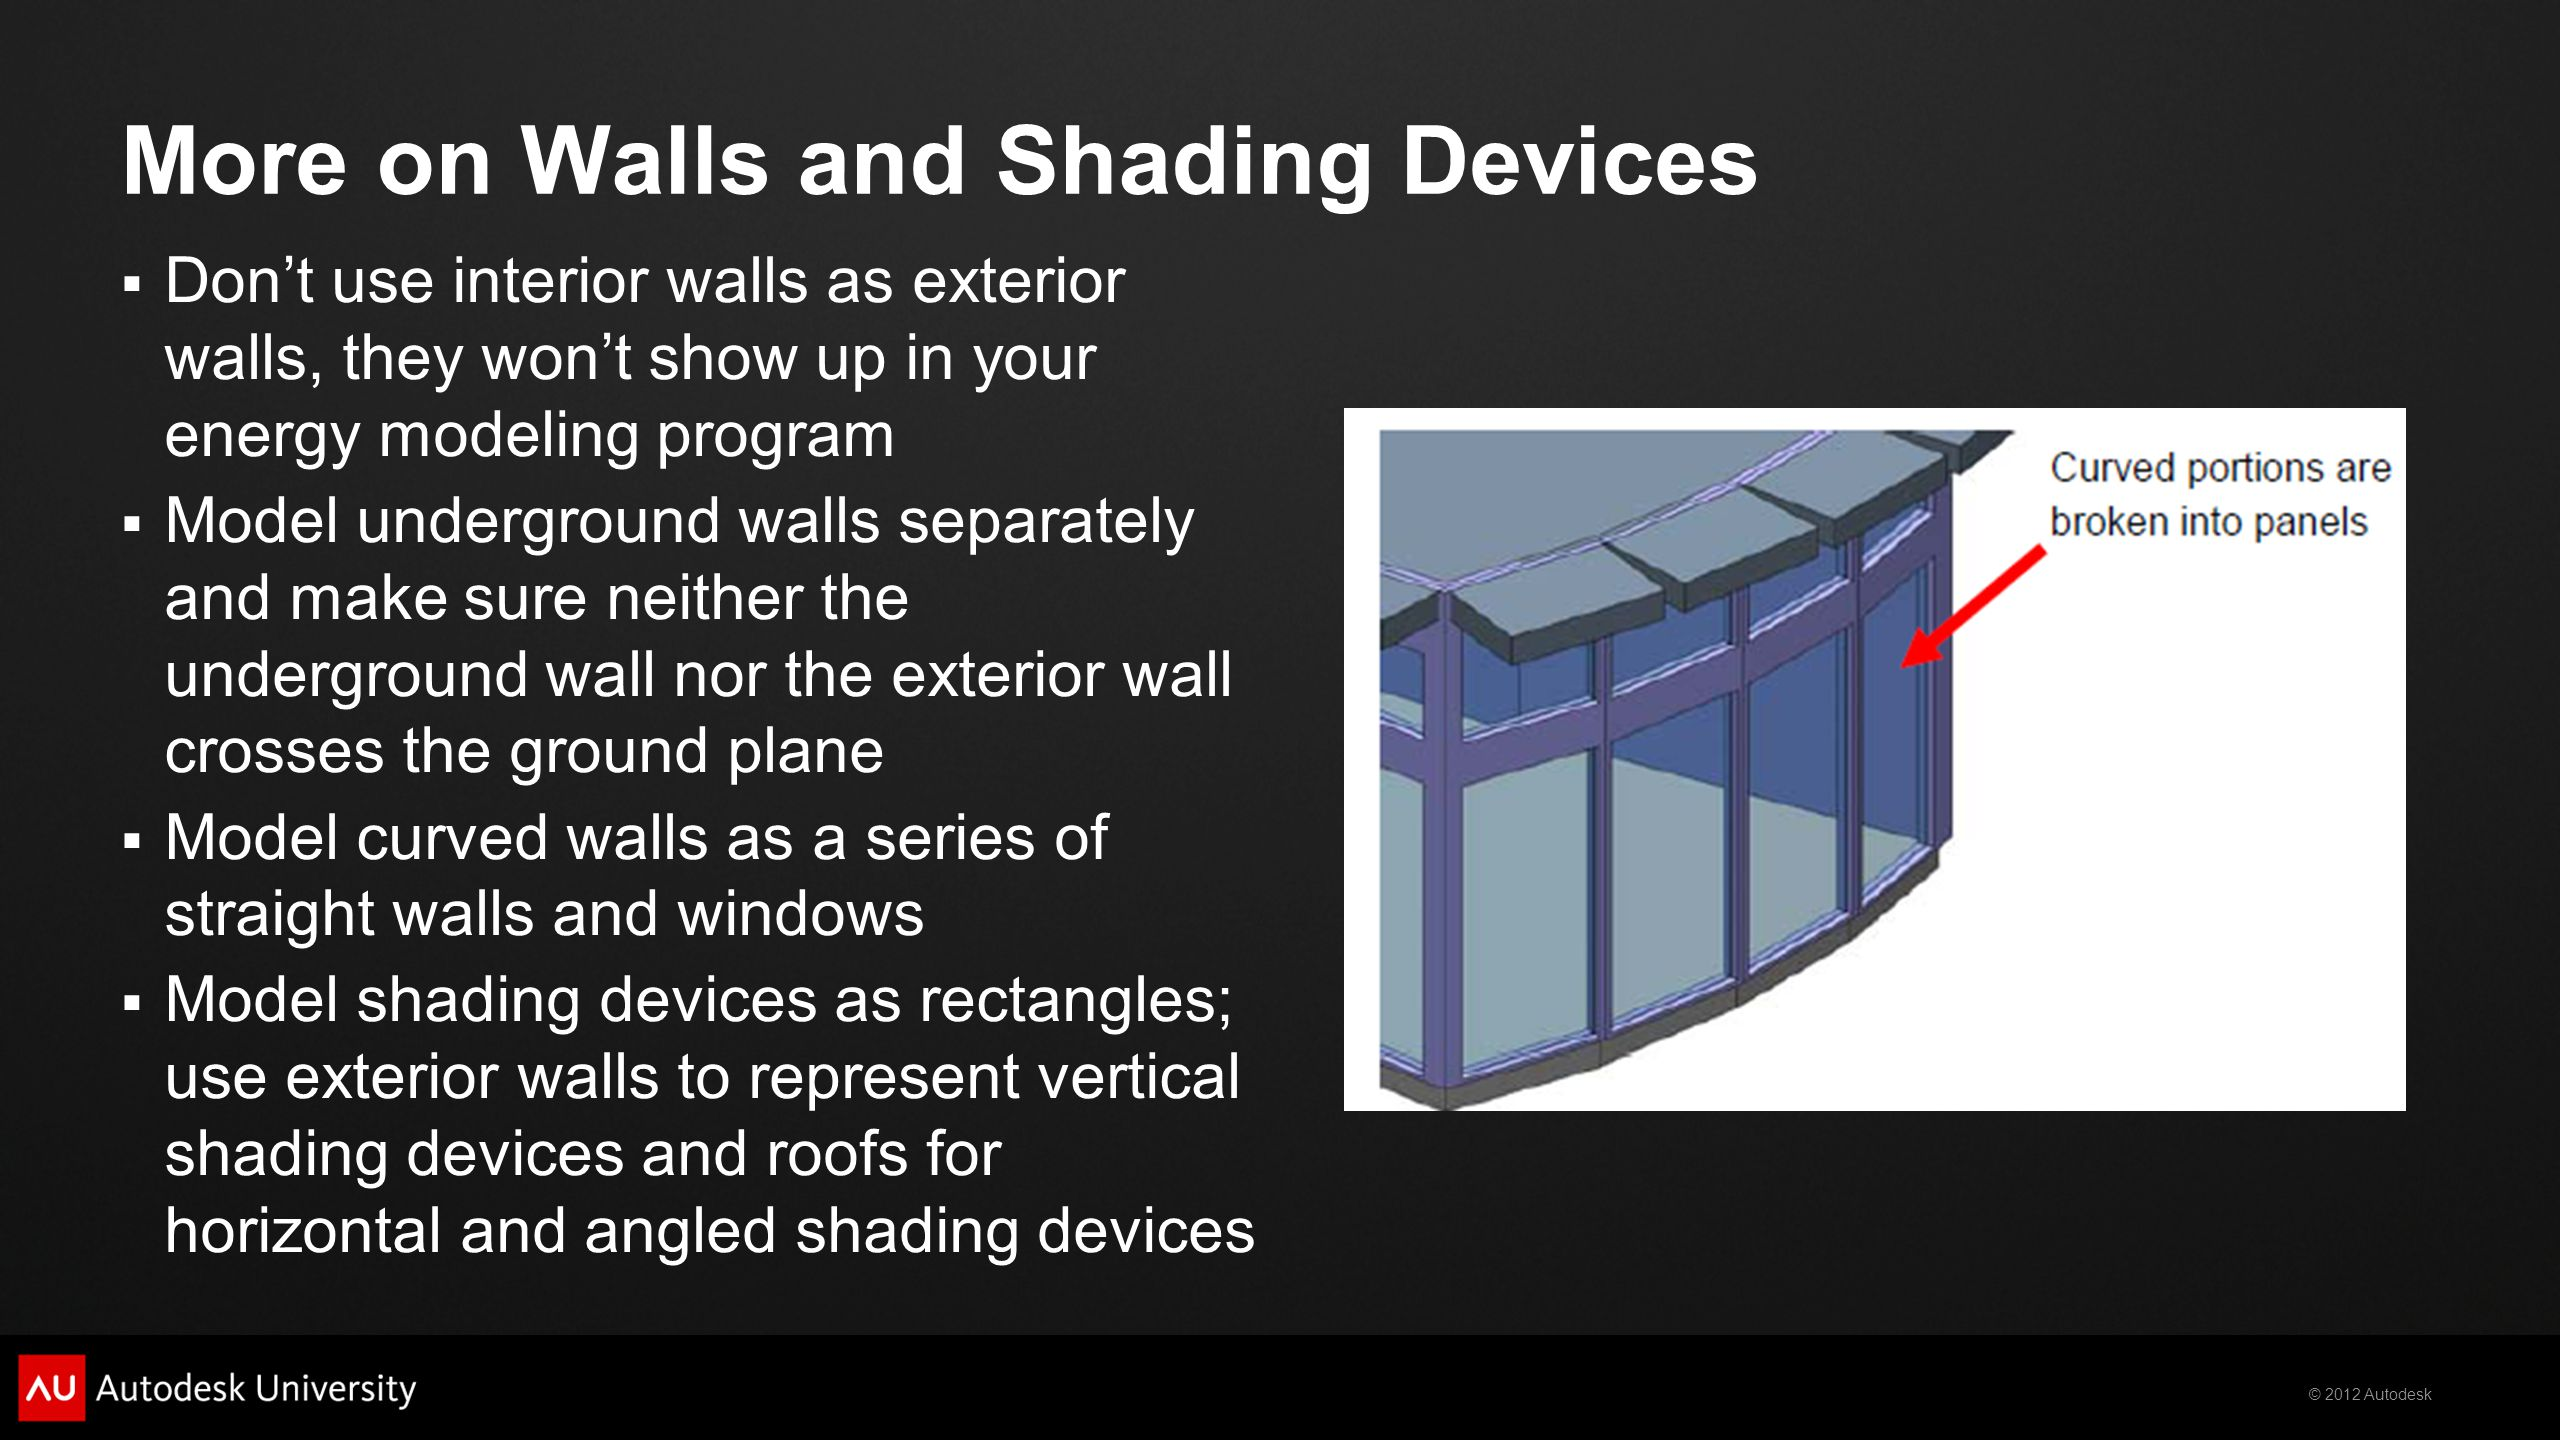 © 2012 Autodesk More on Walls and Shading Devices Dont use interior walls as exterior walls, they wont show up in your energy modeling program Model underground walls separately and make sure neither the underground wall nor the exterior wall crosses the ground plane Model curved walls as a series of straight walls and windows Model shading devices as rectangles; use exterior walls to represent vertical shading devices and roofs for horizontal and angled shading devices